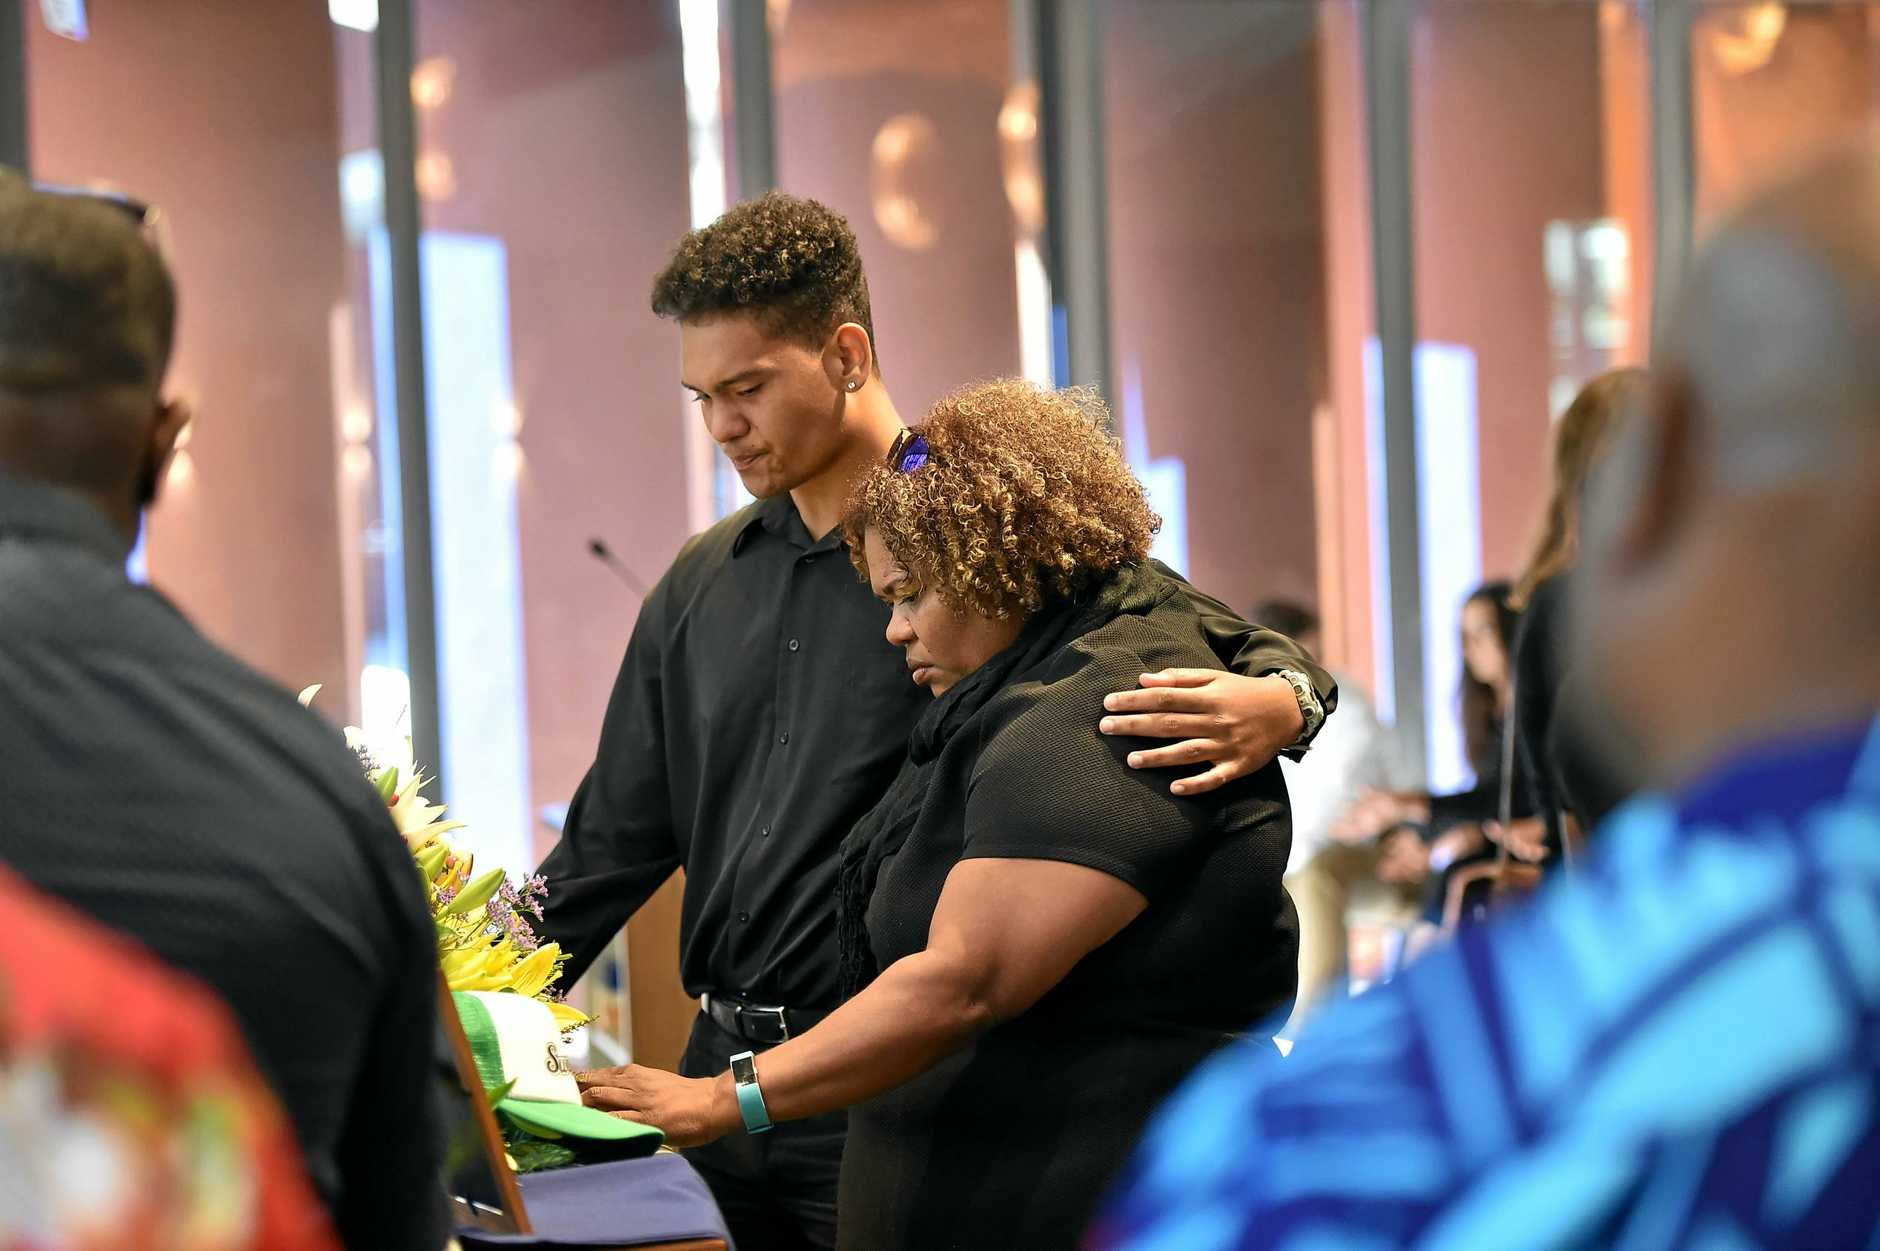 FINAL GOODBYE: Hundreds gathered at the Gregson and Weight chapel at Buderim on Saturday for the funeral of 19-year-old Malu James Nona.